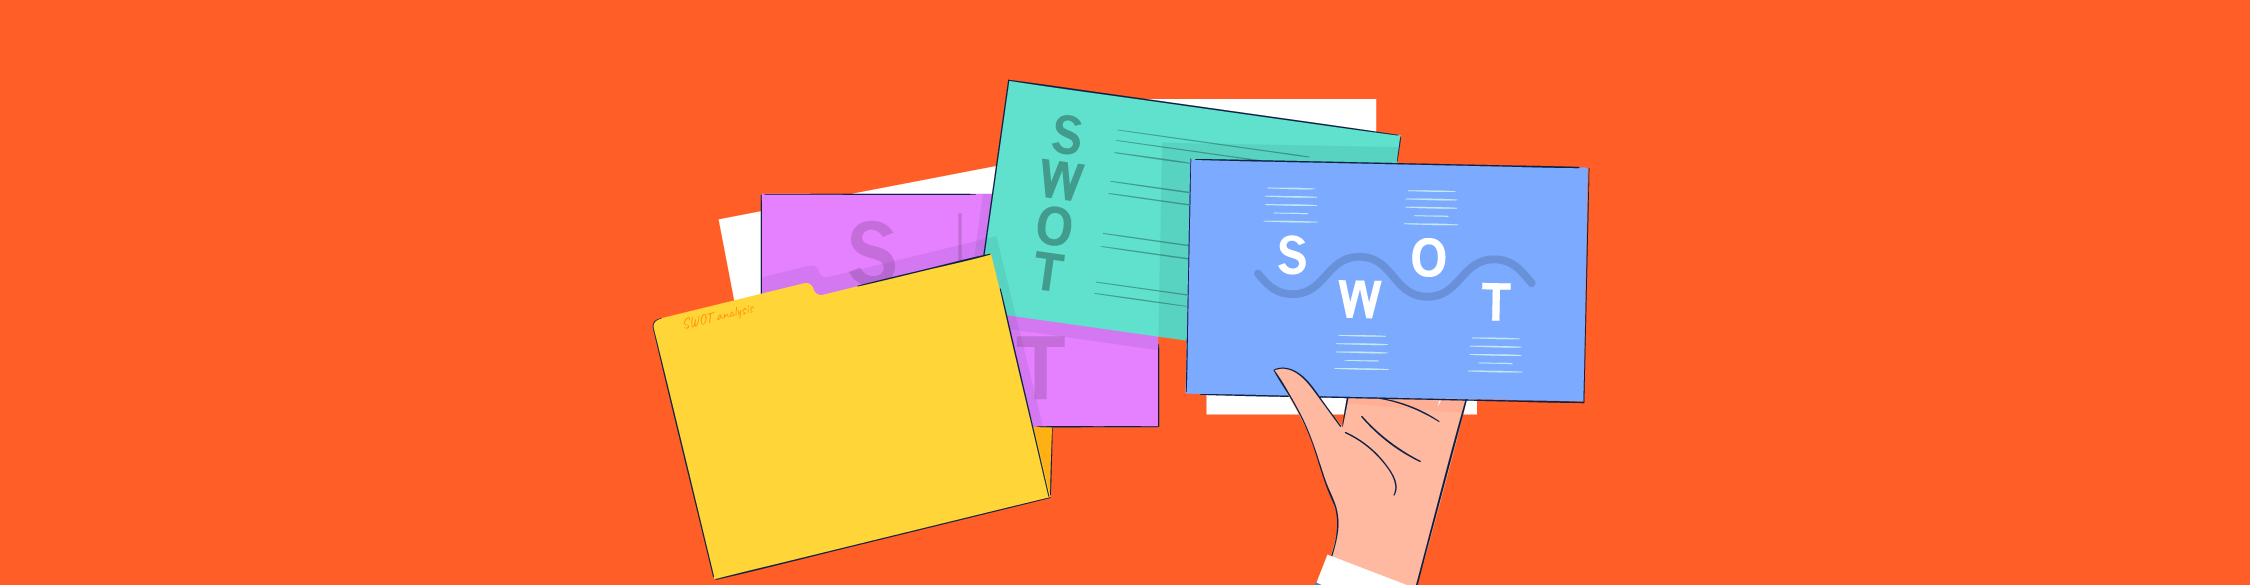 15 (Editable) SWOT Analysis Templates for Professionals (2021)